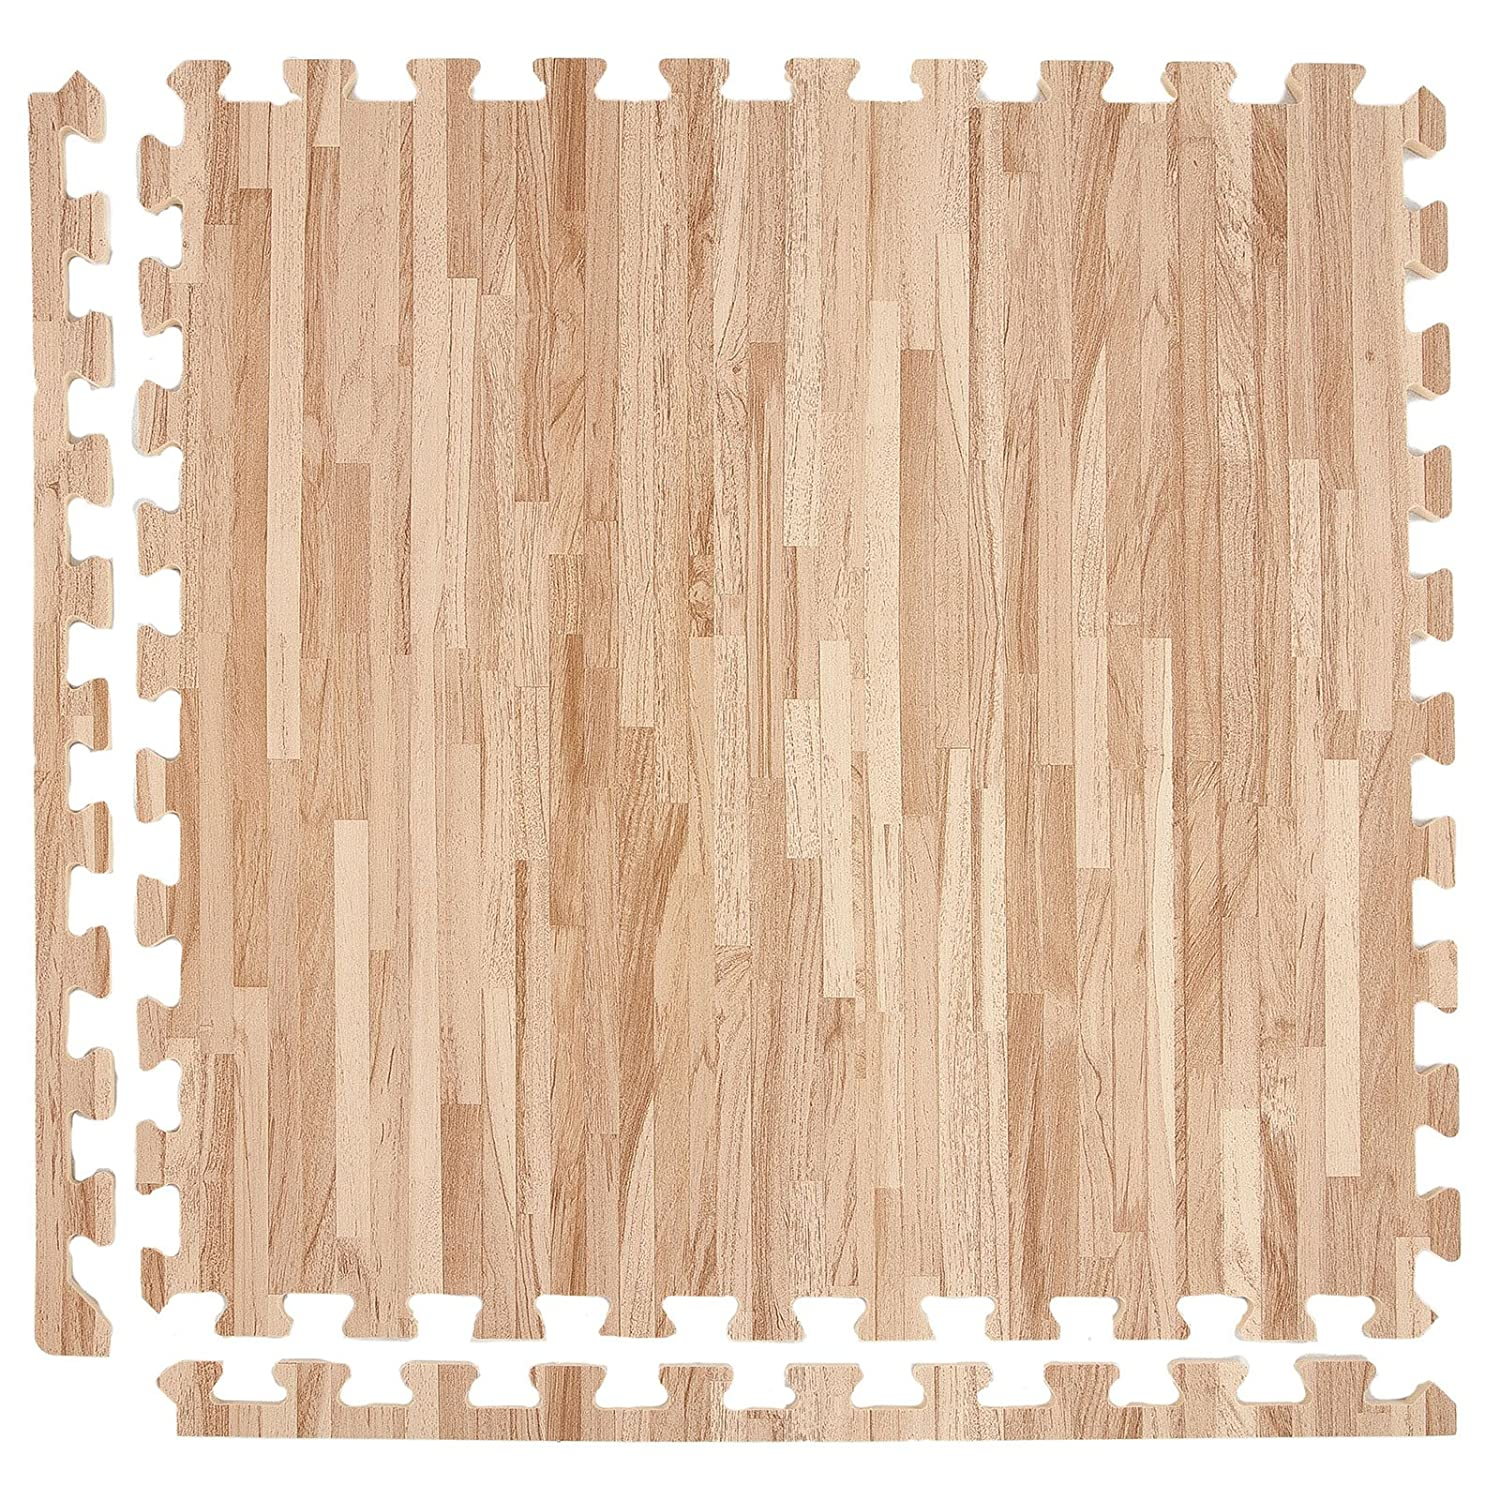 Amazon incstores premium soft wood interlocking foam tiles incstores soft wood foam tiles 2ft x 2ft interlocking floor tiles with edges dailygadgetfo Image collections